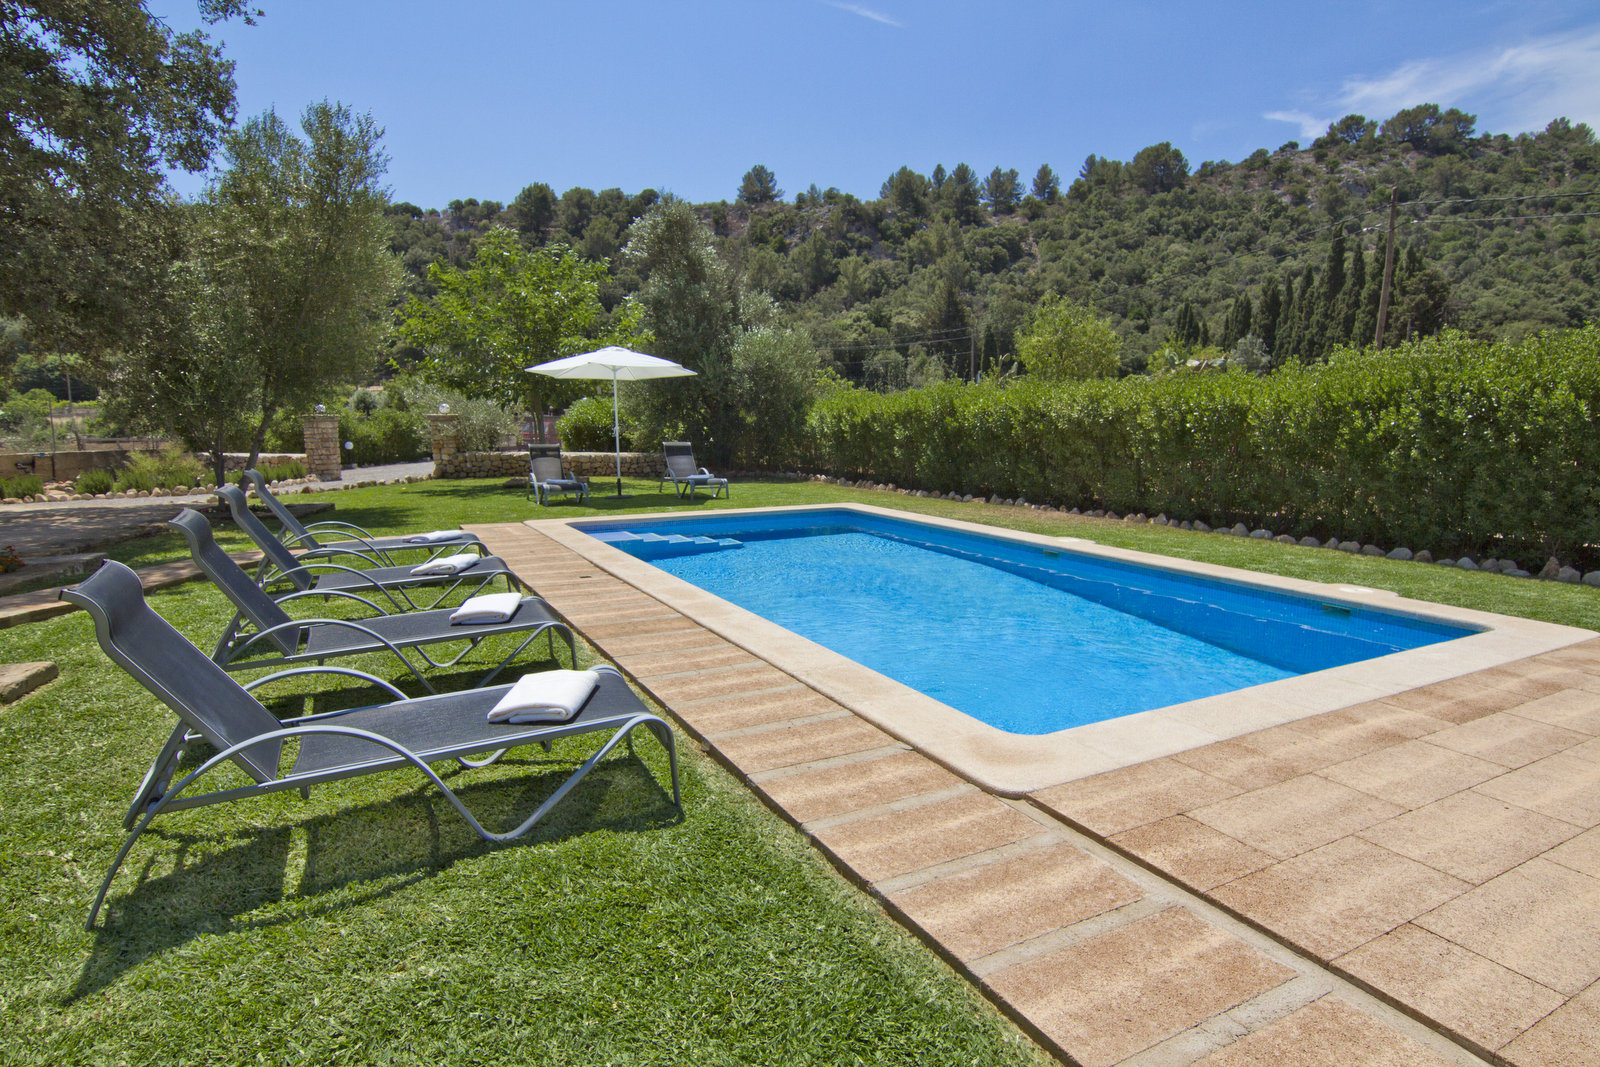 Can Bandris is a nice villa in walking distance of Pollensa